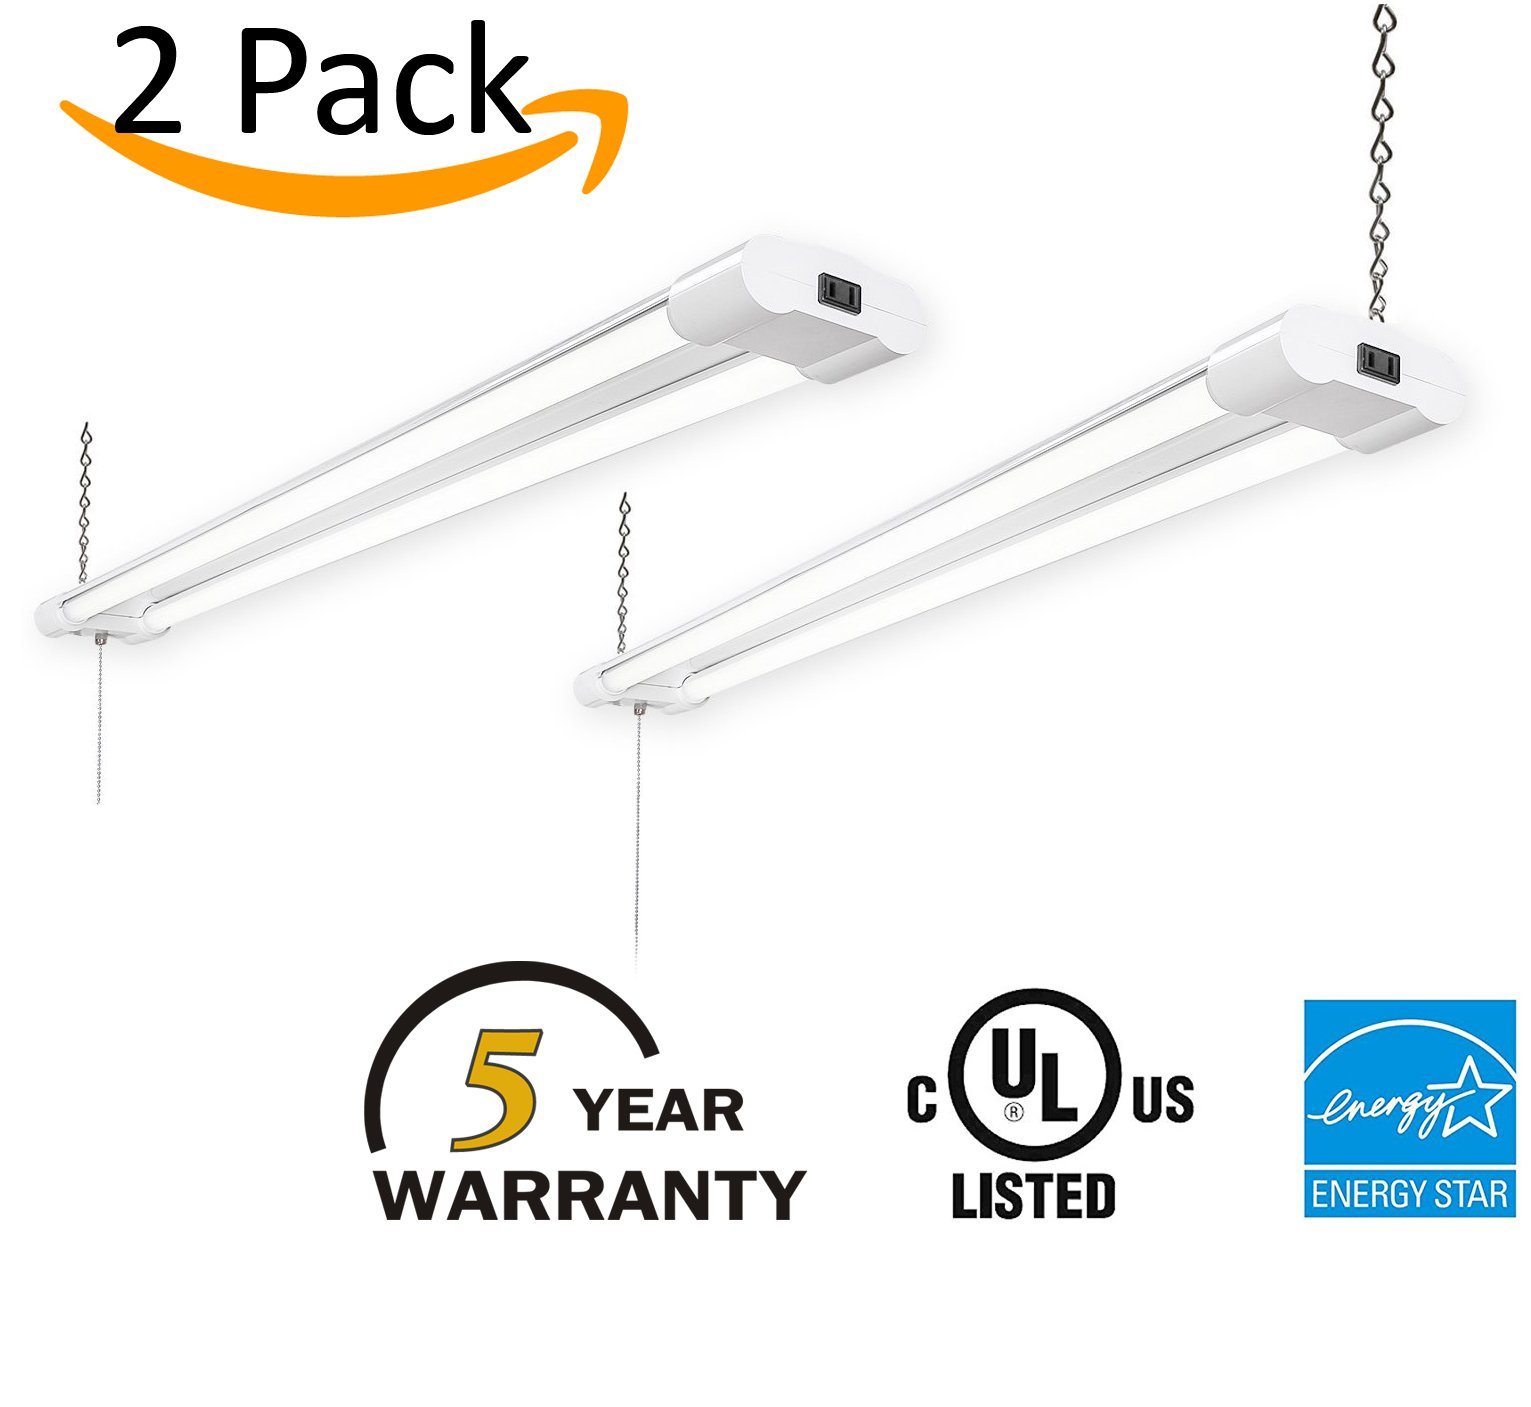 2-Pack LED Utility Shop Light, Super Bright 5000K Natural White 4800 Lumens 40W Linkable Fixture with 2-Prong Plug 5ft. Cord and Pull Chain - UL/cUL & DLC Certified